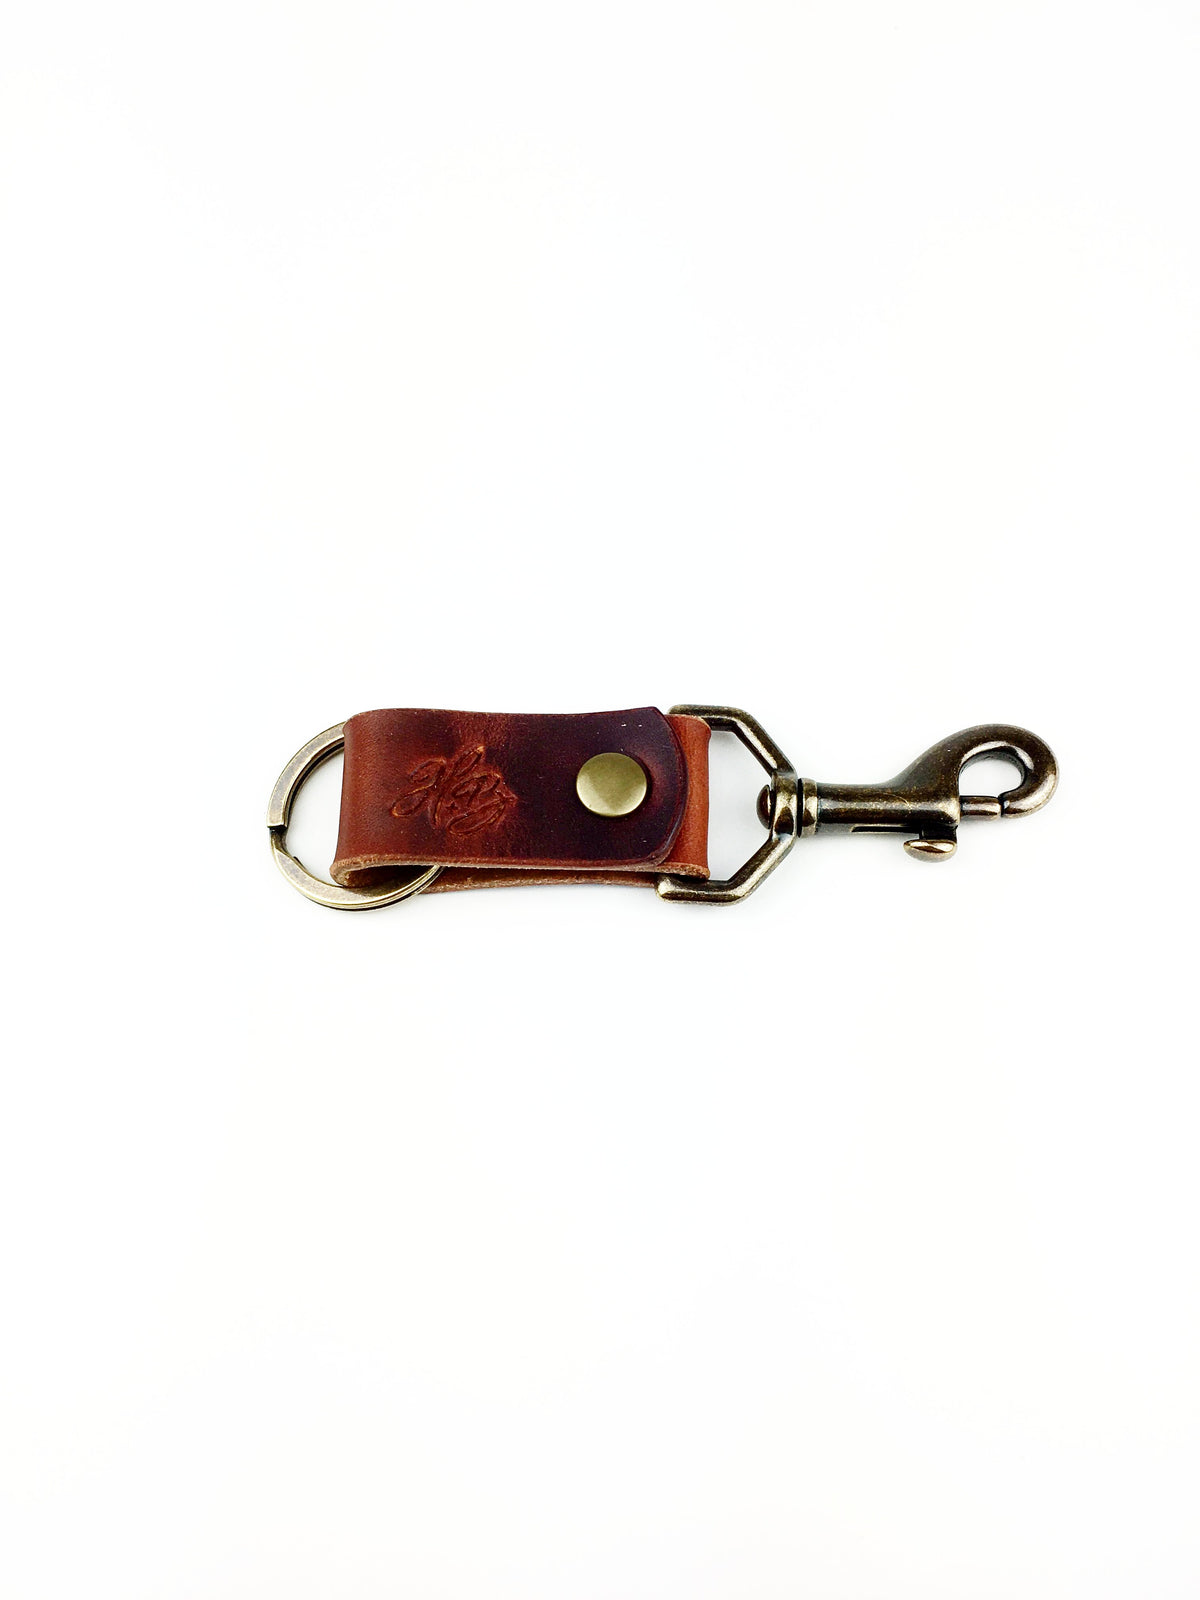 H+B KEY FOB | BURNT UMBER LEATHER KEY FOB